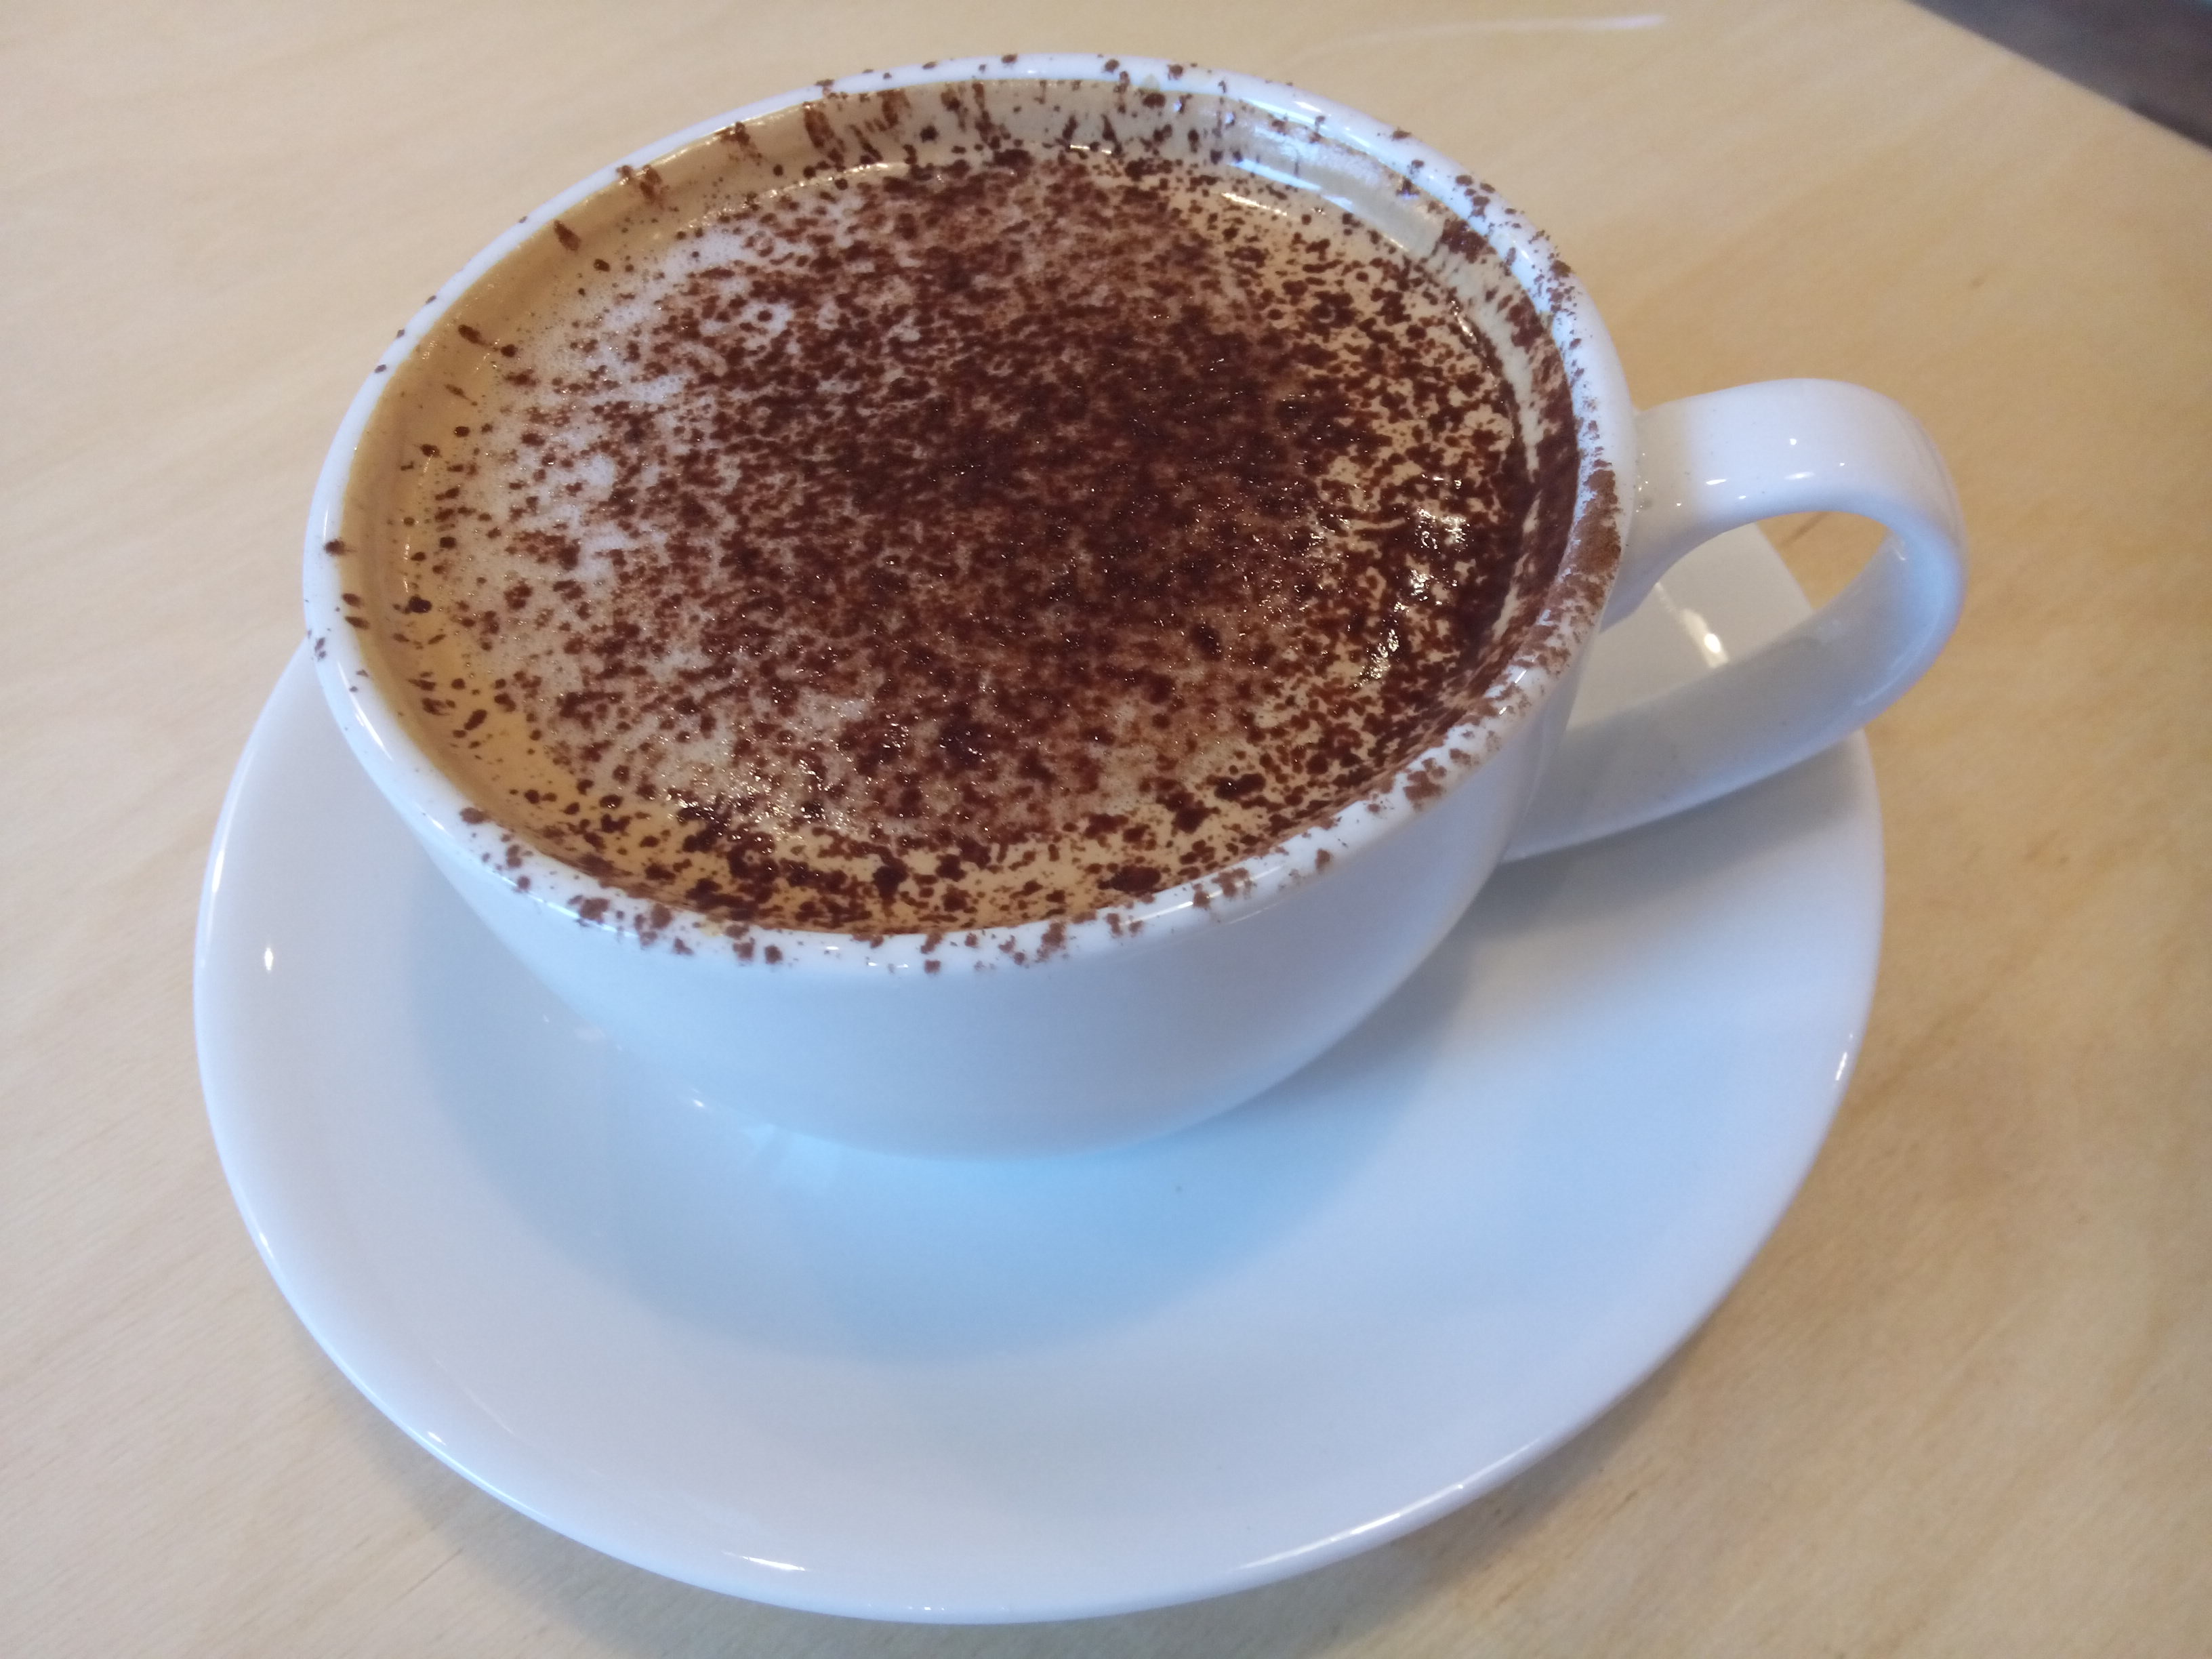 A white cup and saucer with chocolate sprinkled foamy coffee